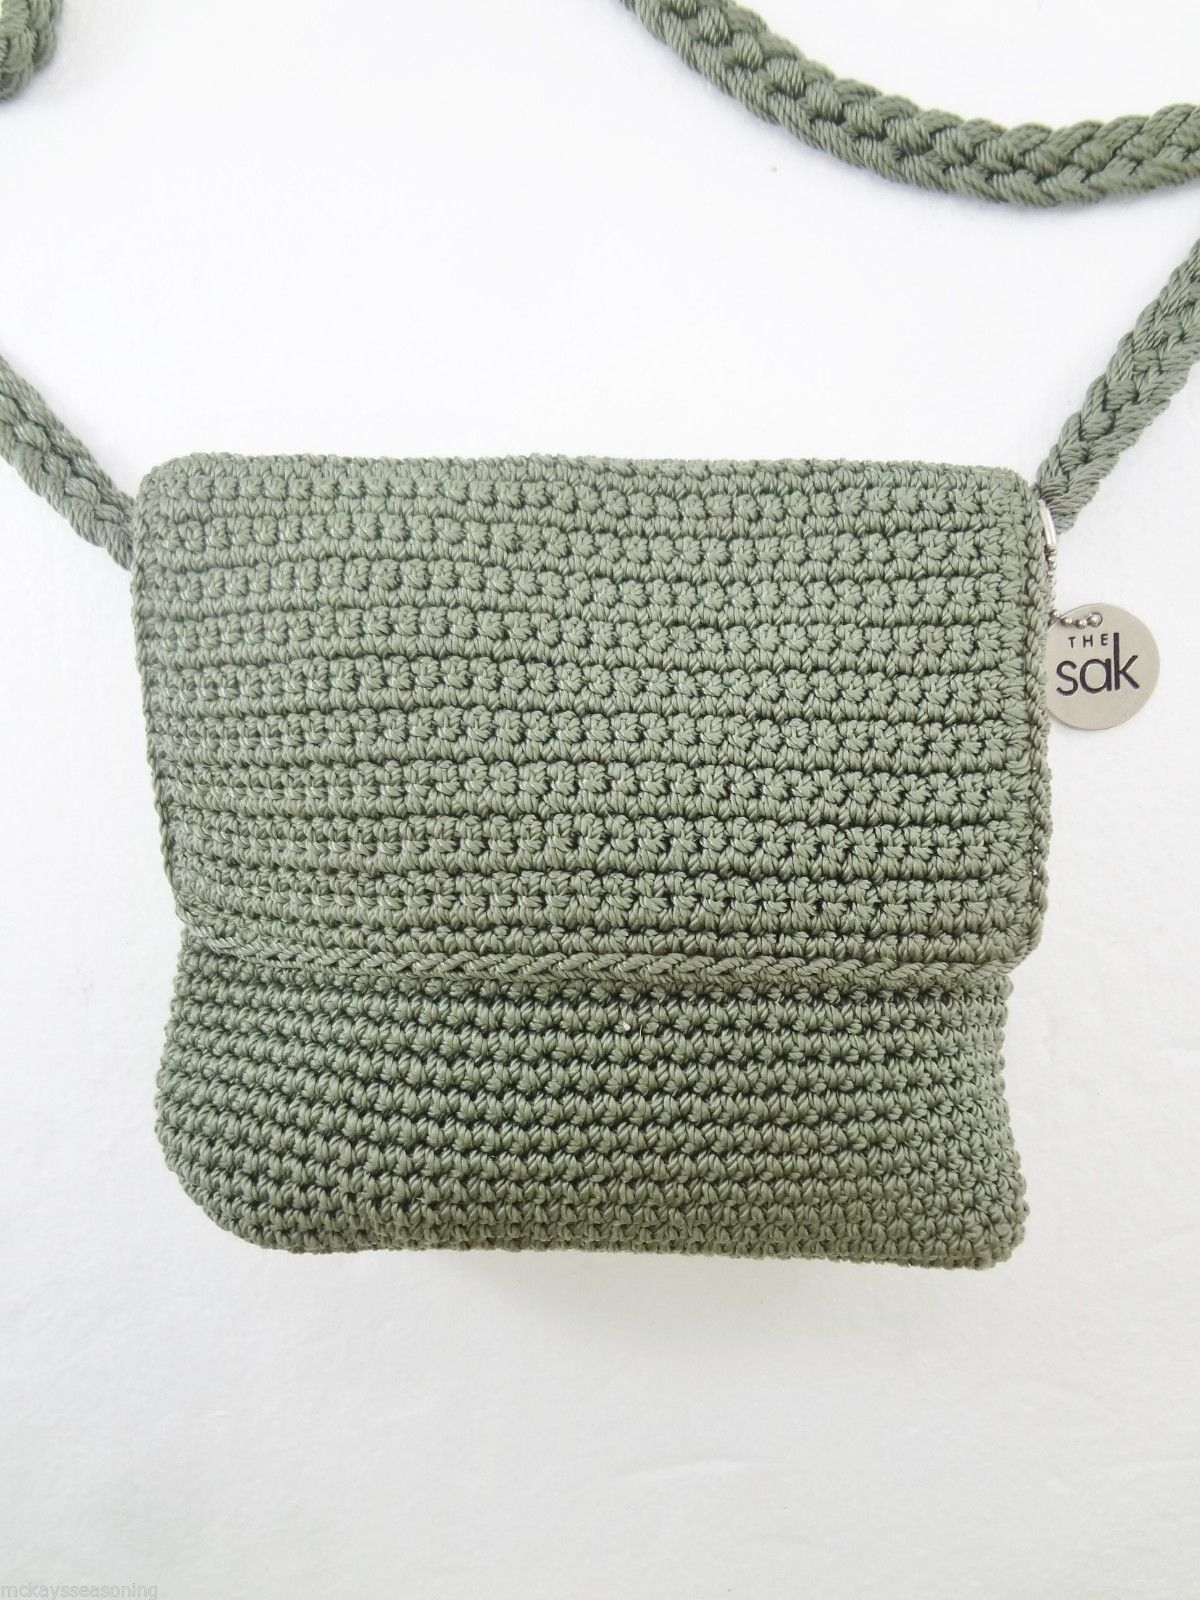 Crochet Crossbody Bag Pattern : The Sak Sage Green Crochet Small Cross-Body Shoulder Bag Handbag Purse ...